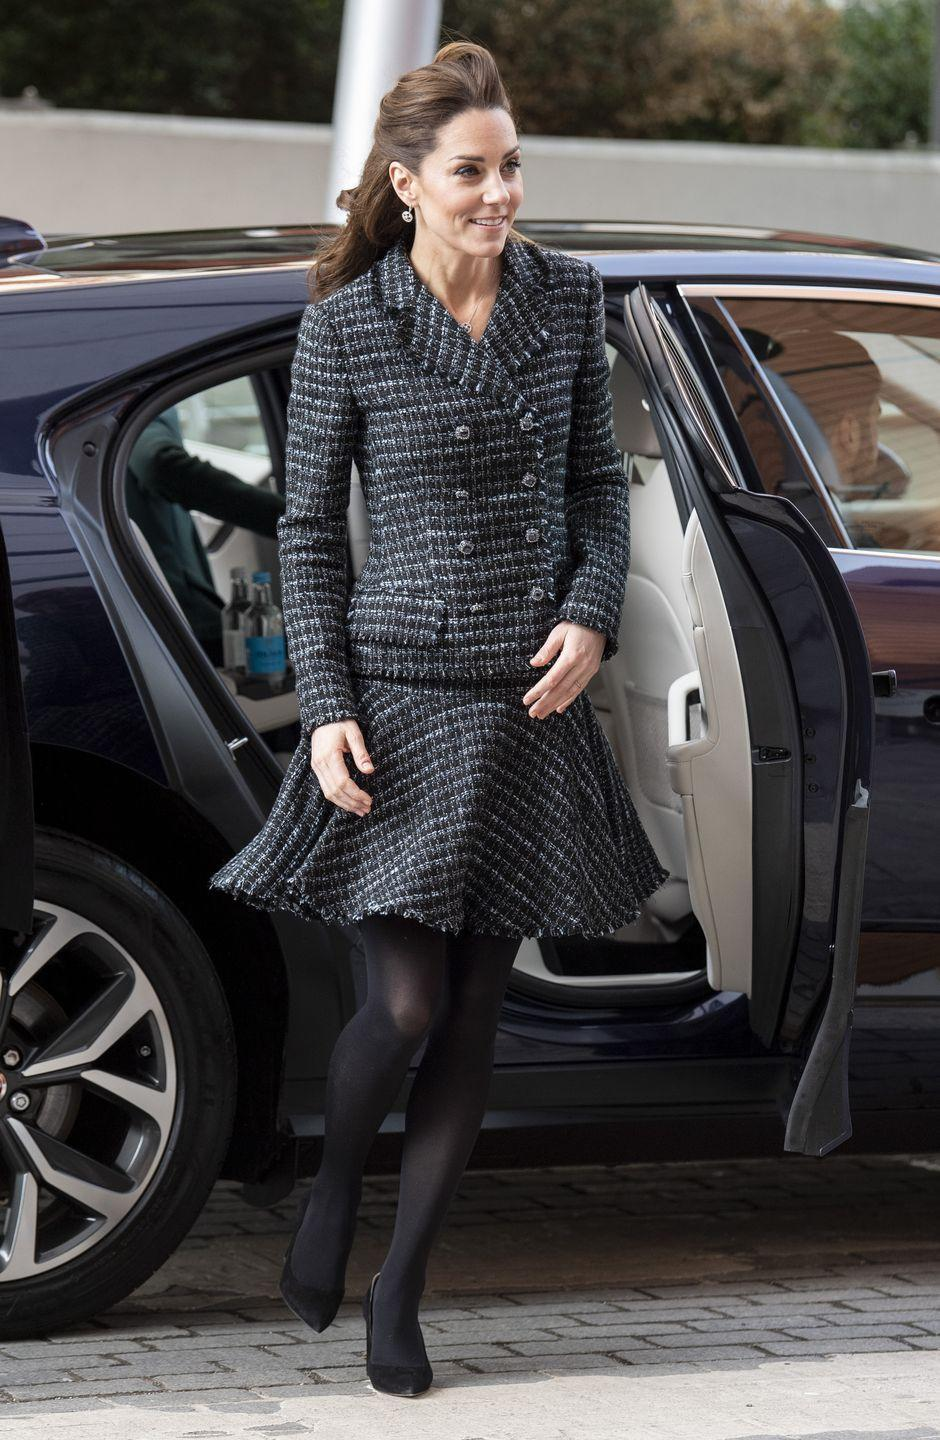 """<p>The Duchess arrived at <a href=""""https://www.townandcountrymag.com/society/tradition/a30686555/kate-middleton-dolce-gabbana-skirt-suit-evelina-photos/"""" rel=""""nofollow noopener"""" target=""""_blank"""" data-ylk=""""slk:Evelina Children's Hospital to attend a workshop run by the National Portrait Gallery"""" class=""""link rapid-noclick-resp"""">Evelina Children's Hospital to attend a workshop run by the National Portrait Gallery</a>, wearing a Dolce & Gabbana skirt suit and <a href=""""https://go.redirectingat.com?id=74968X1596630&url=https%3A%2F%2Fwww.net-a-porter.com%2Fus%2Fen%2Fproduct%2F1202165&sref=https%3A%2F%2Fwww.townandcountrymag.com%2Fstyle%2Ffashion-trends%2Fnews%2Fg1633%2Fkate-middleton-fashion%2F"""" rel=""""nofollow noopener"""" target=""""_blank"""" data-ylk=""""slk:Gianvito Rossi pumps"""" class=""""link rapid-noclick-resp"""">Gianvito Rossi pumps</a>.</p>"""